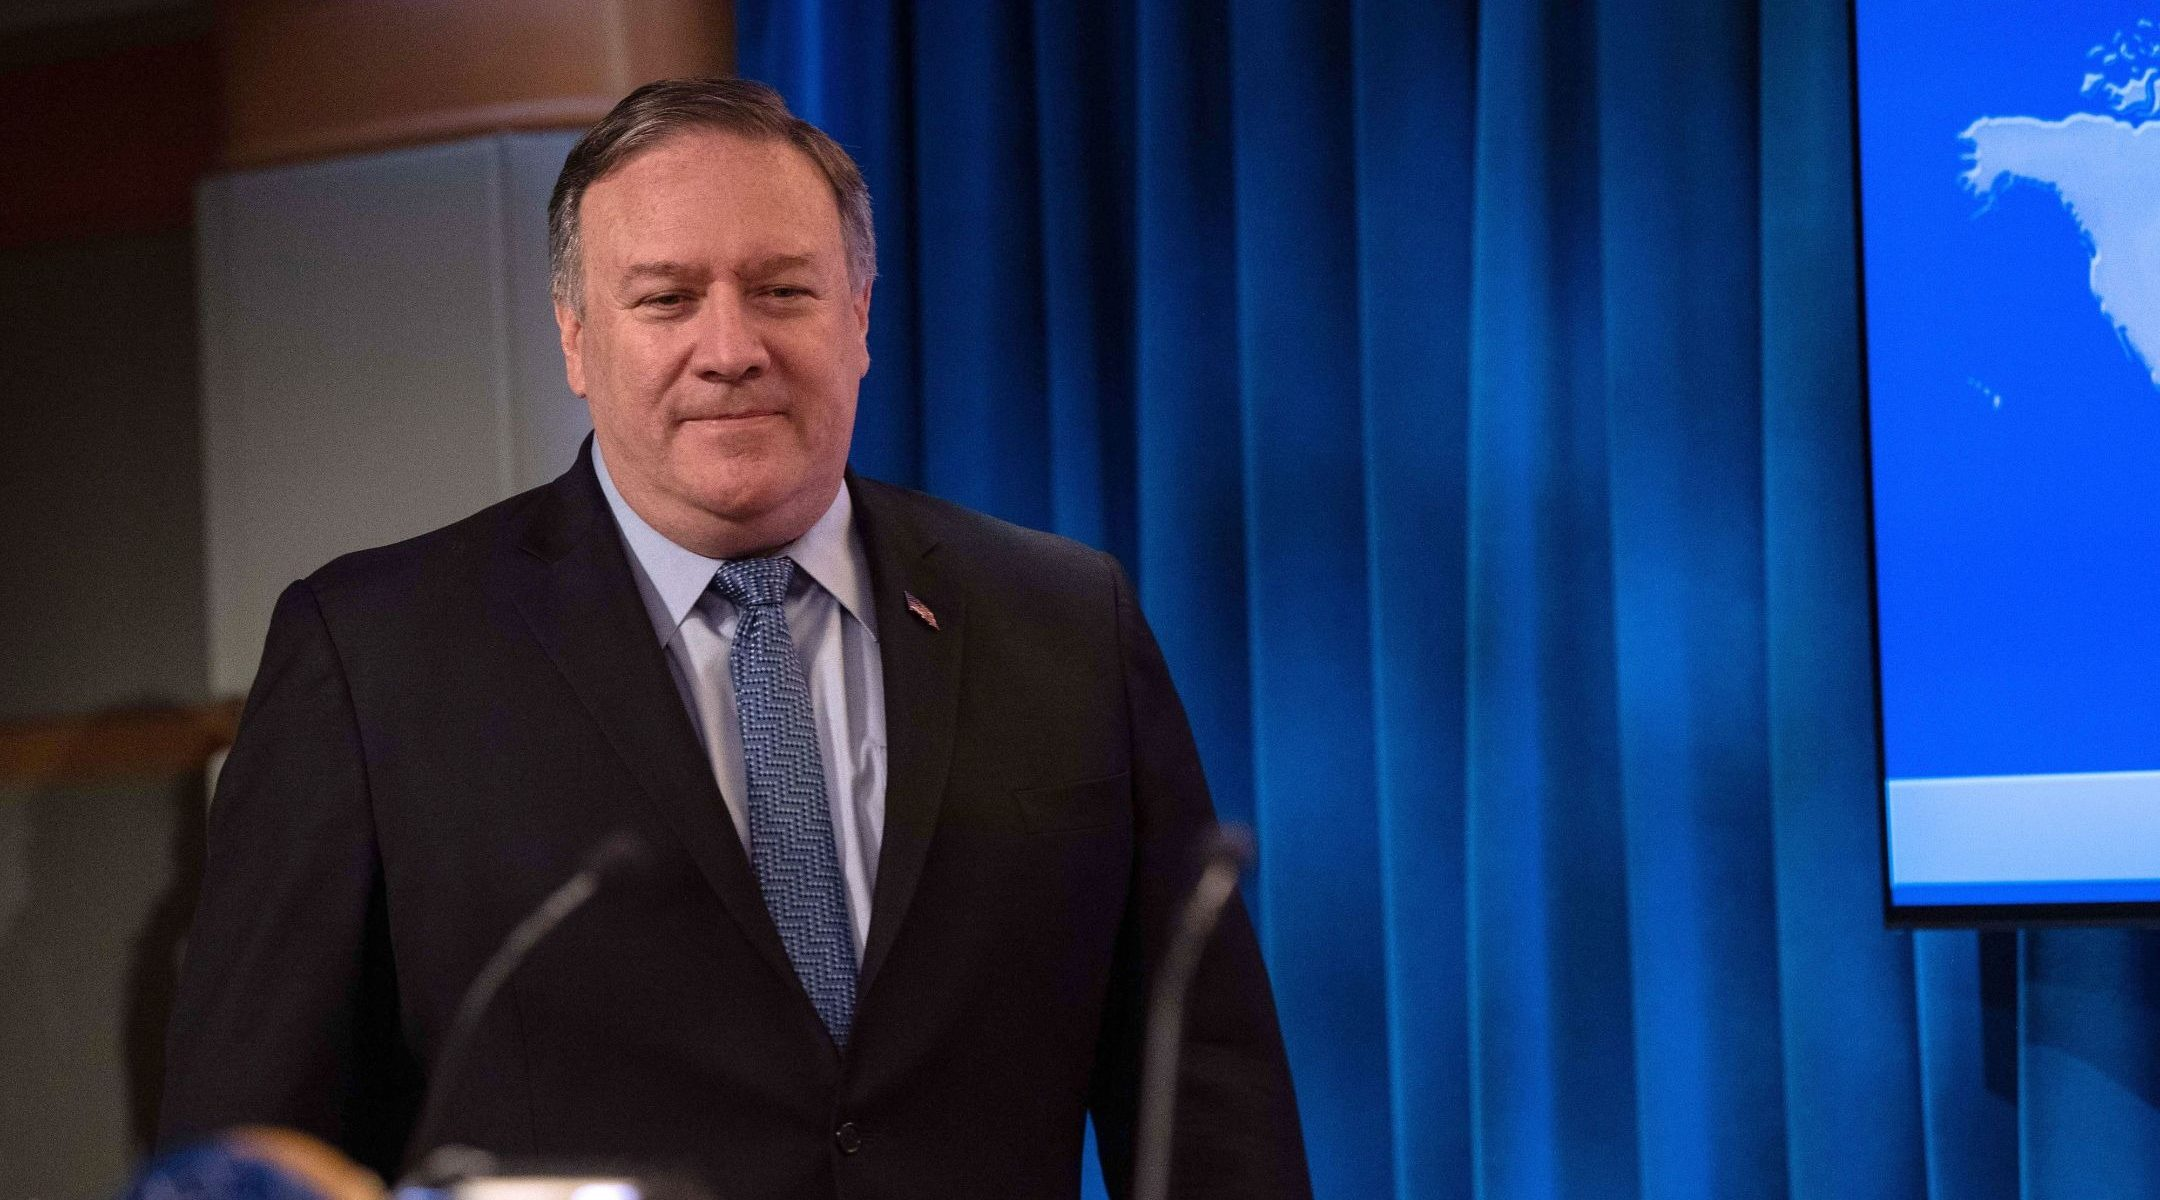 US Secretary of State Mike Pompeo arrives to present the 2018 International Religious Freedom Report at the State Department in Washington, DC, on June 21, 2019. (Photo/JTA-Nicholas Kamm-AFP)